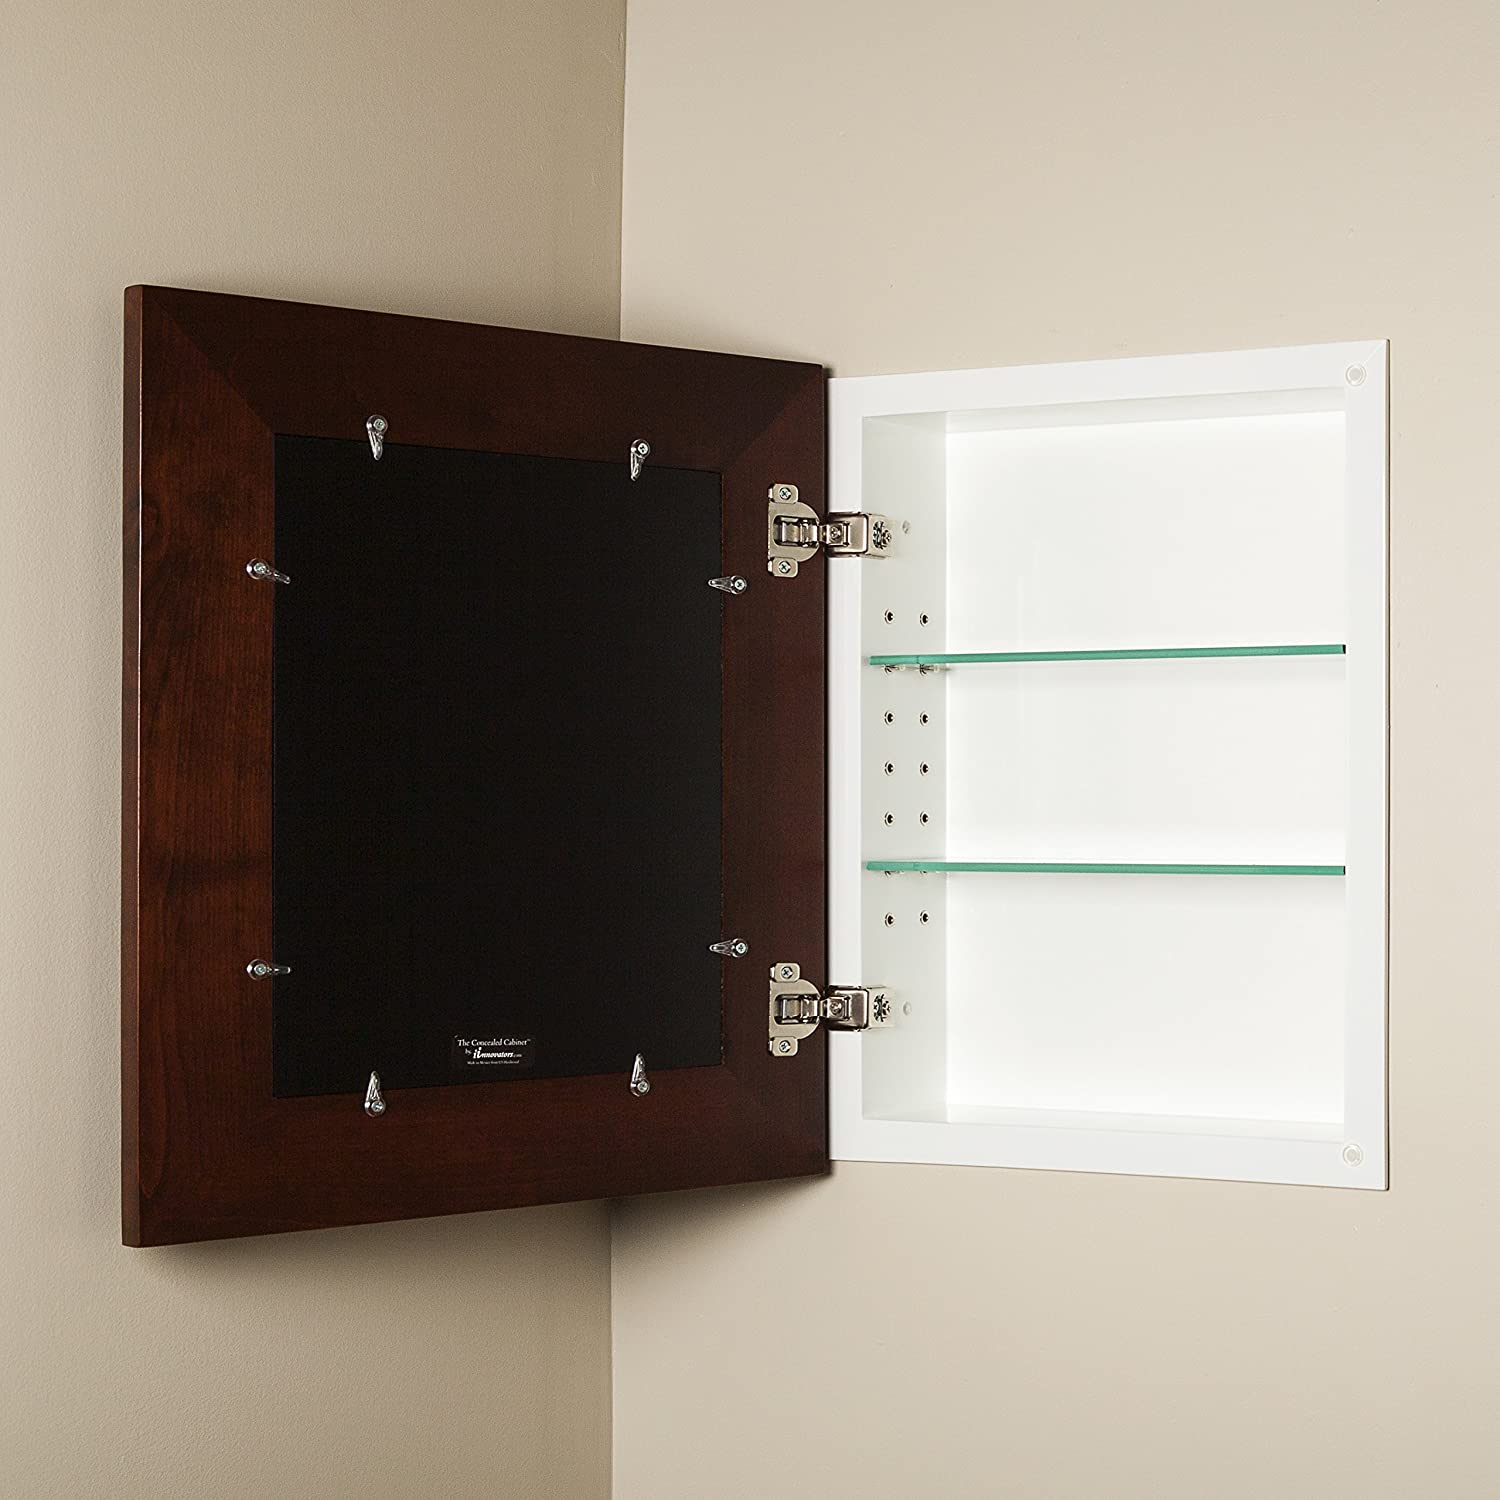 Superieur Amazon.com: 14x18 Espresso Concealed Cabinet (Large), A Recessed Mirrorless  Medicine Cabinet With A Picture Frame Door: Home U0026 Kitchen